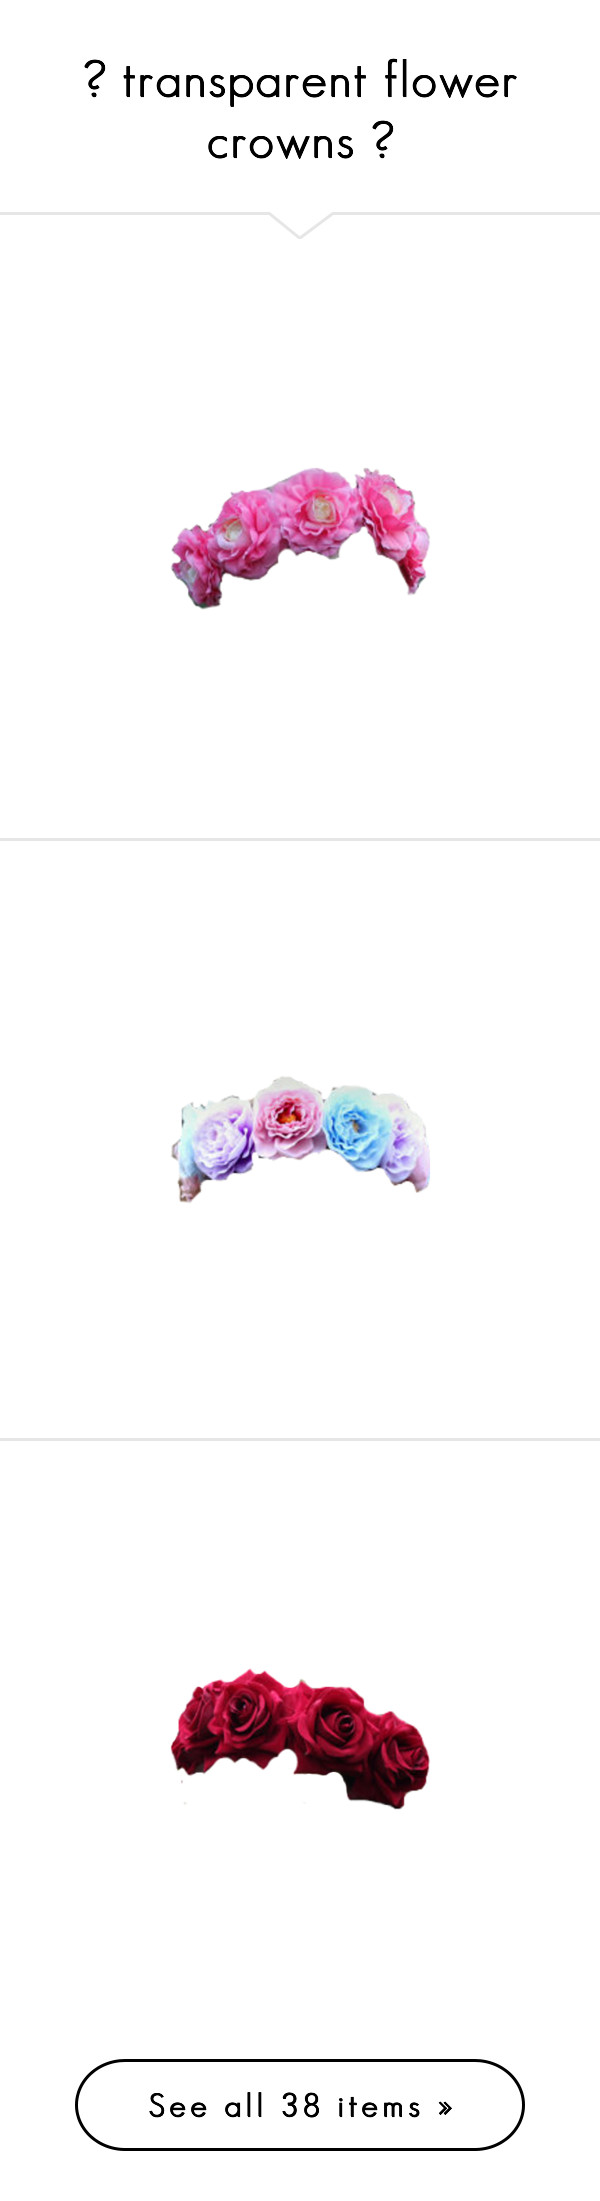 transparent flower crowns by someoneyournot liked on transparent flower crowns by someoneyournot liked on polyvore featuring accessories izmirmasajfo